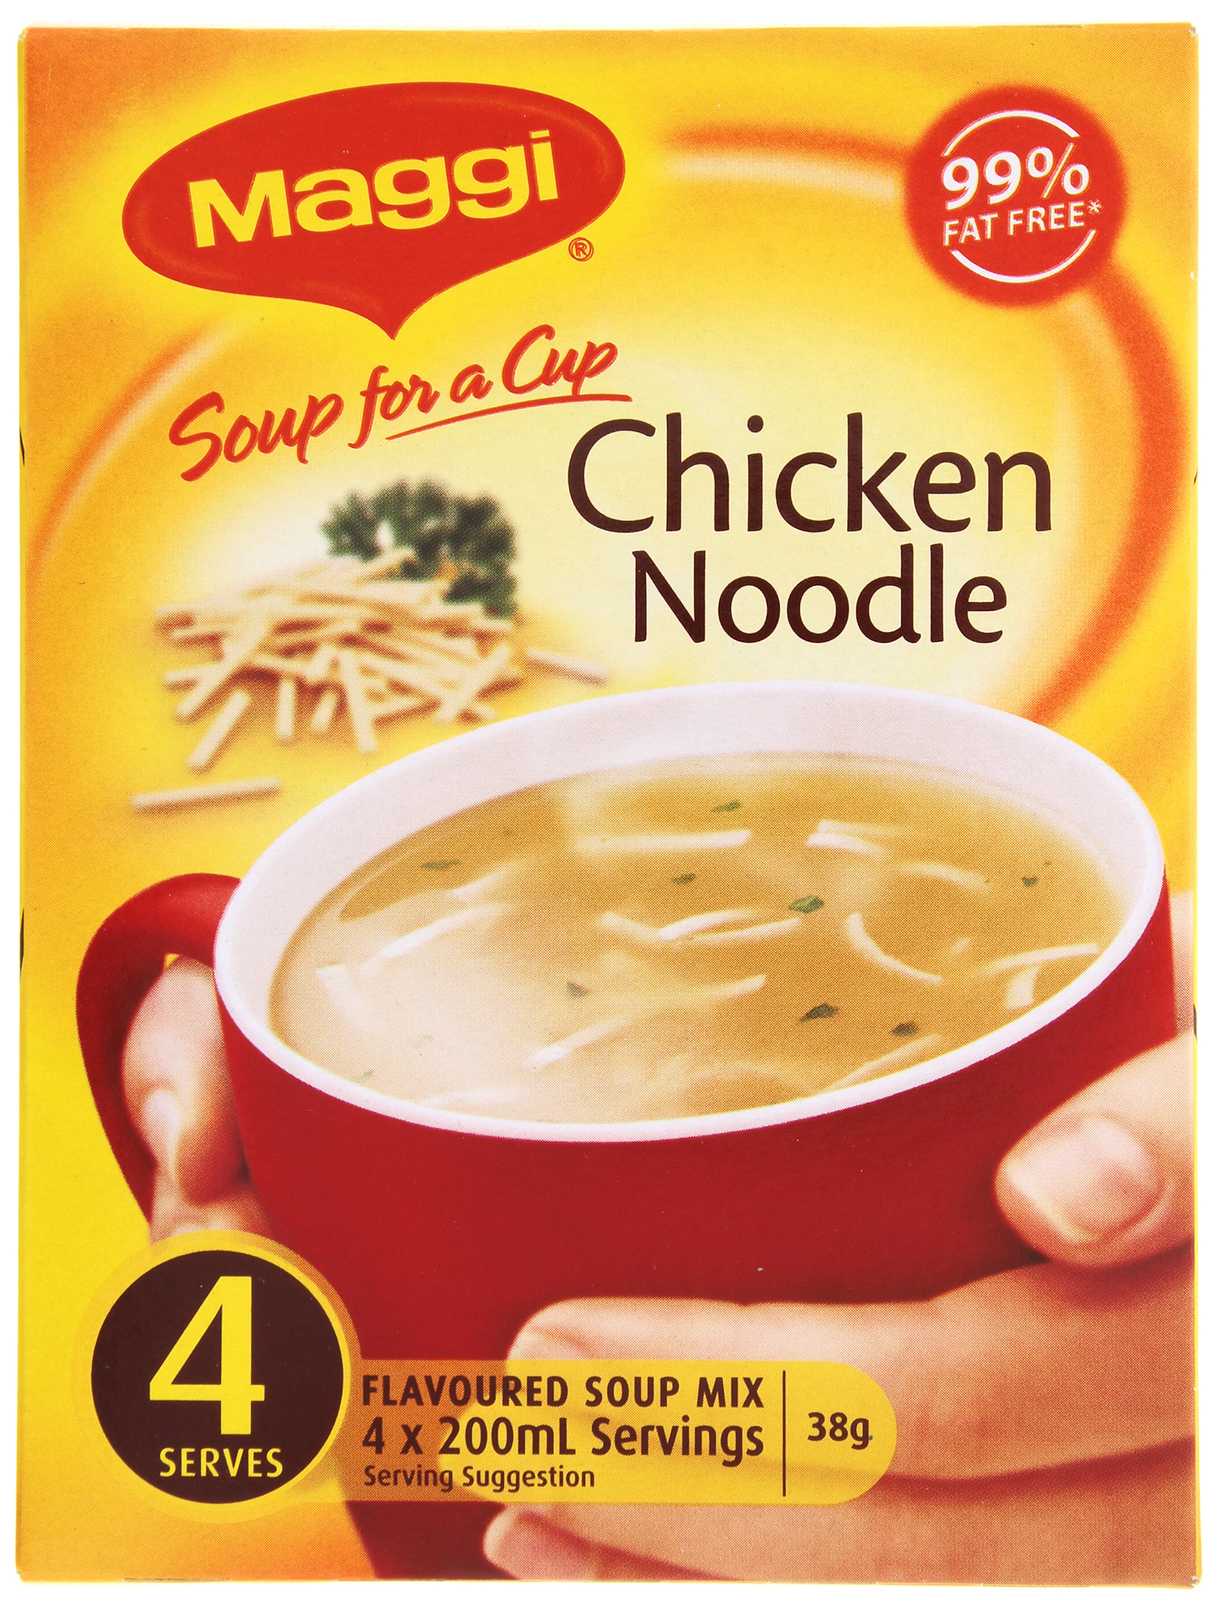 MAGGI Soup for a Cup Chicken Noodle 38g (48 Pack) image